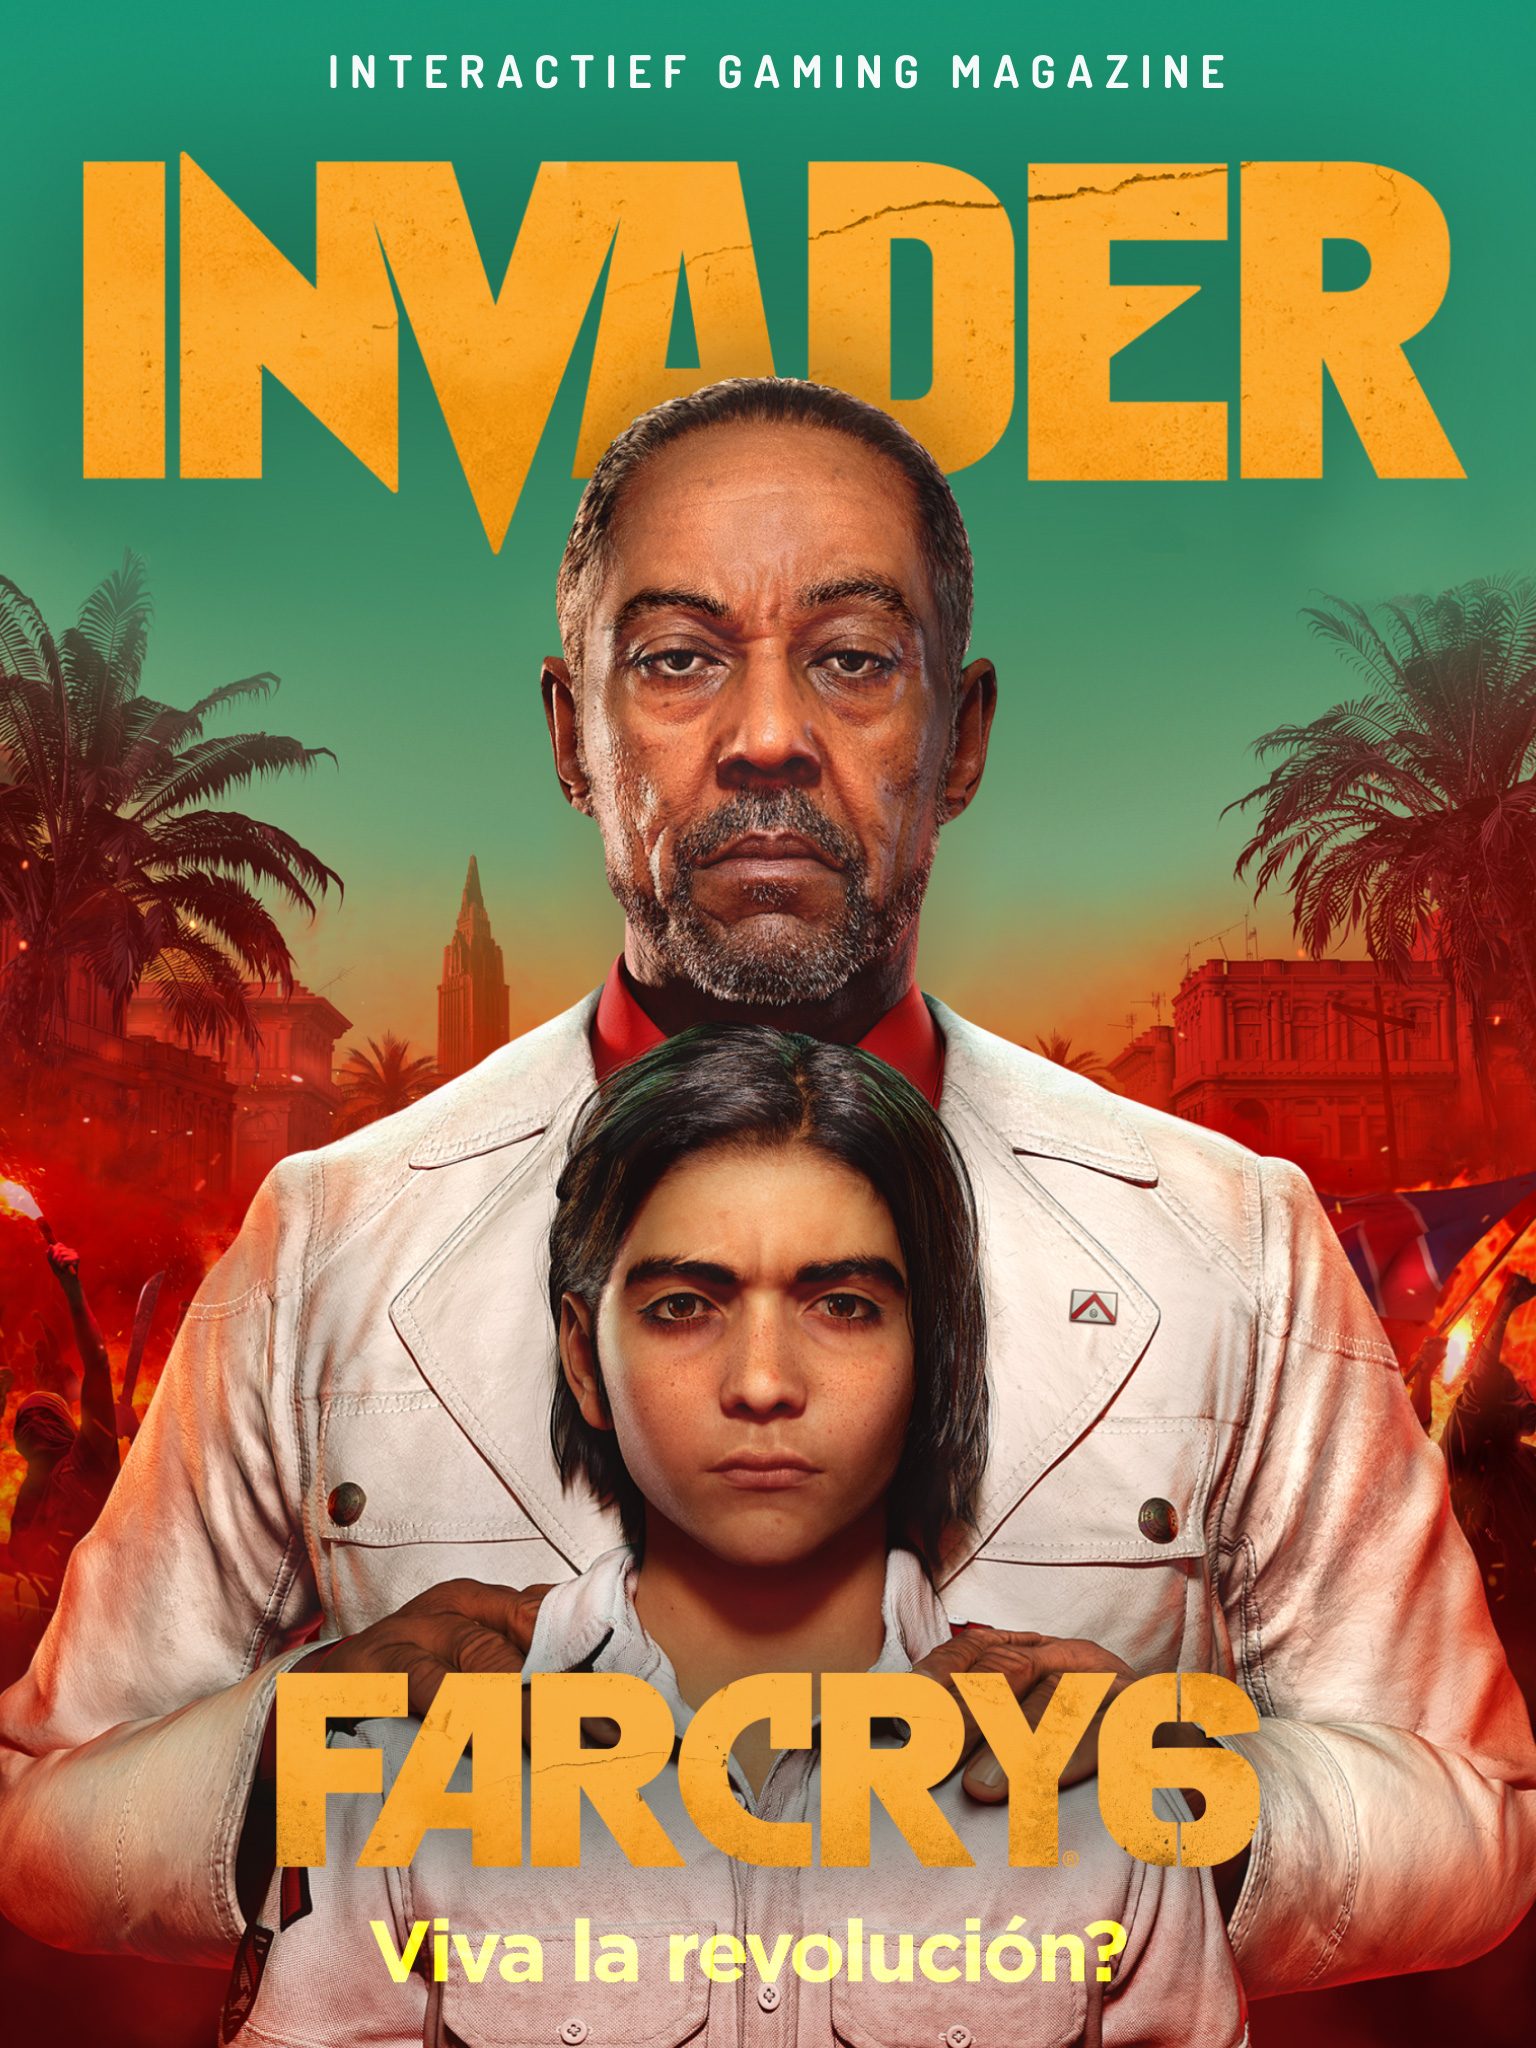 Invader84 FC6 Cover 1536x2049 0 00 15 15